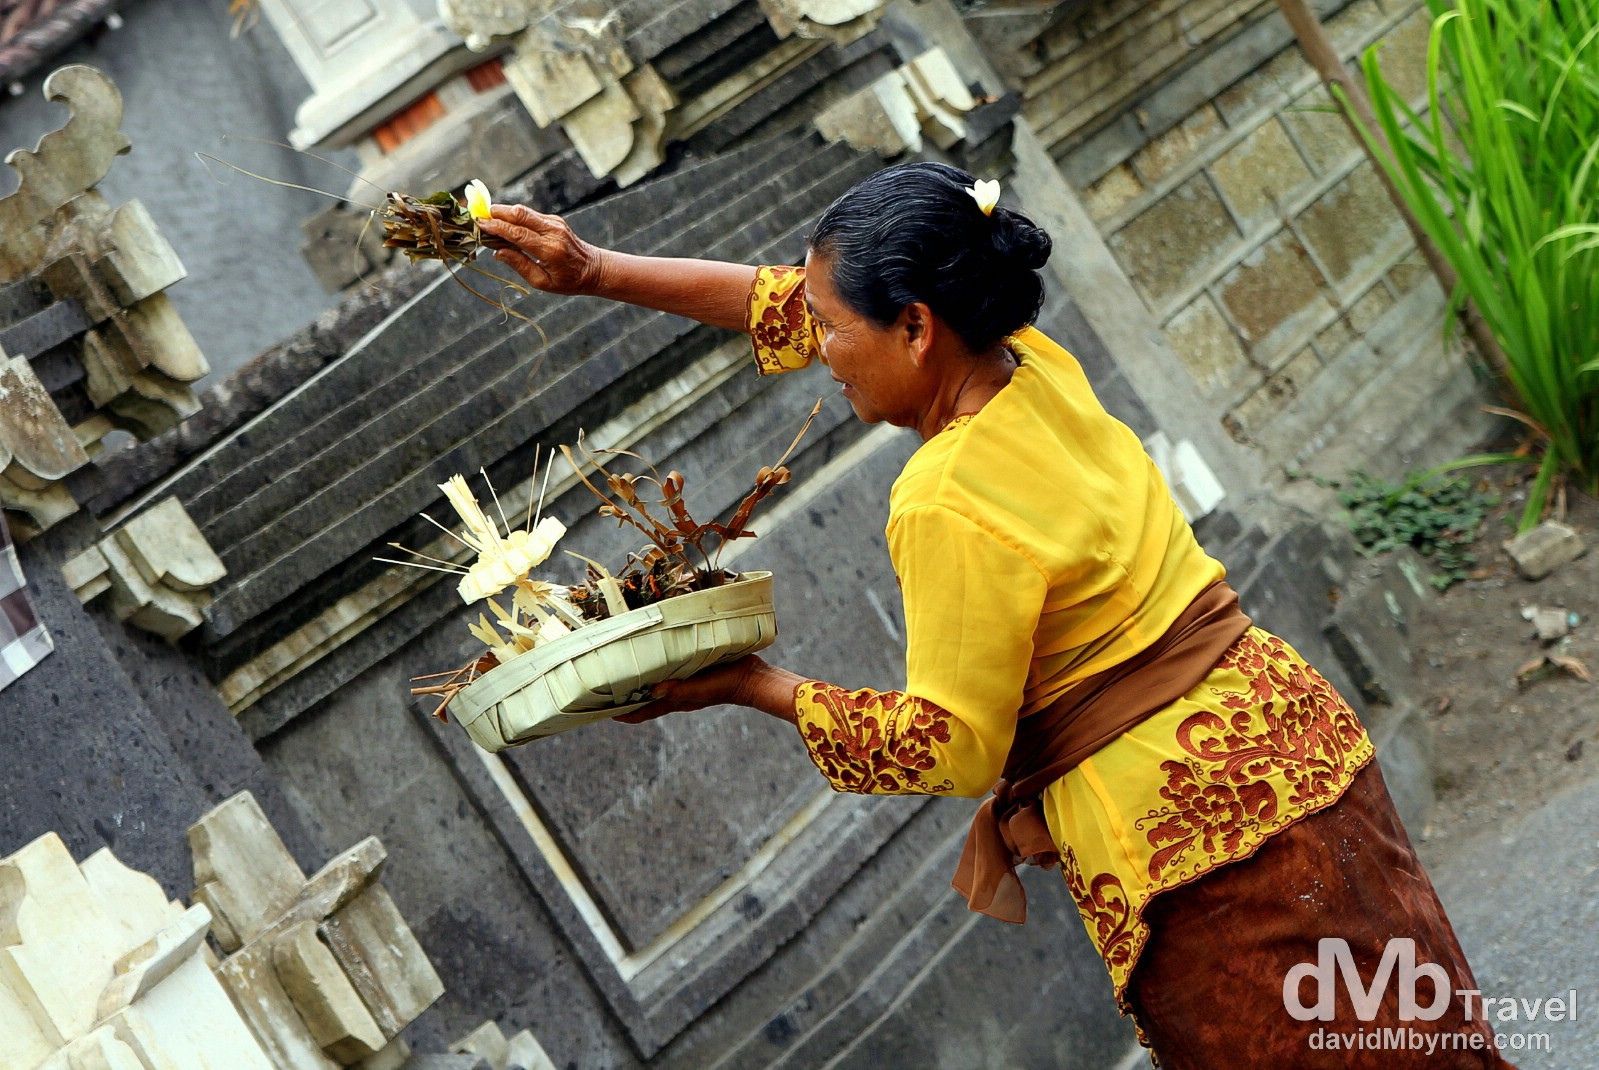 Making offerings in Ubud, Bali, Indonesia. June 20th 2012.